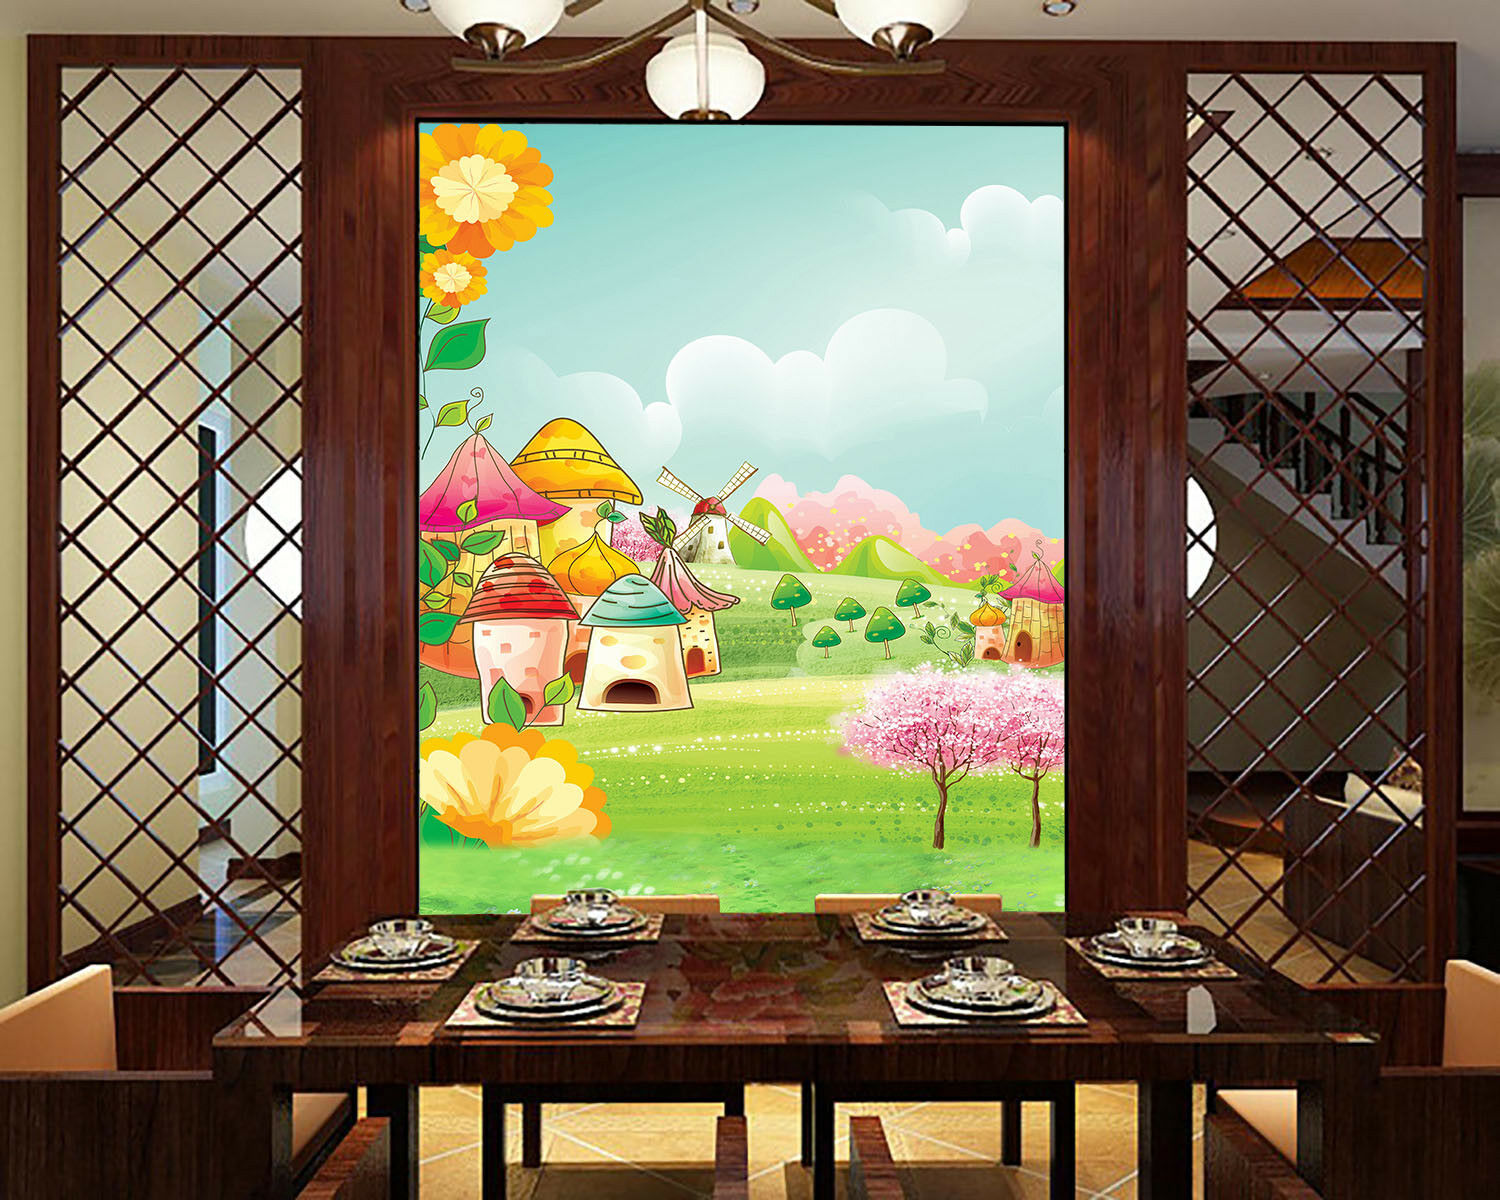 3D House WaterFarbe 6 Wall Paper Wall Print Decal Wall Deco Indoor Mural Summer